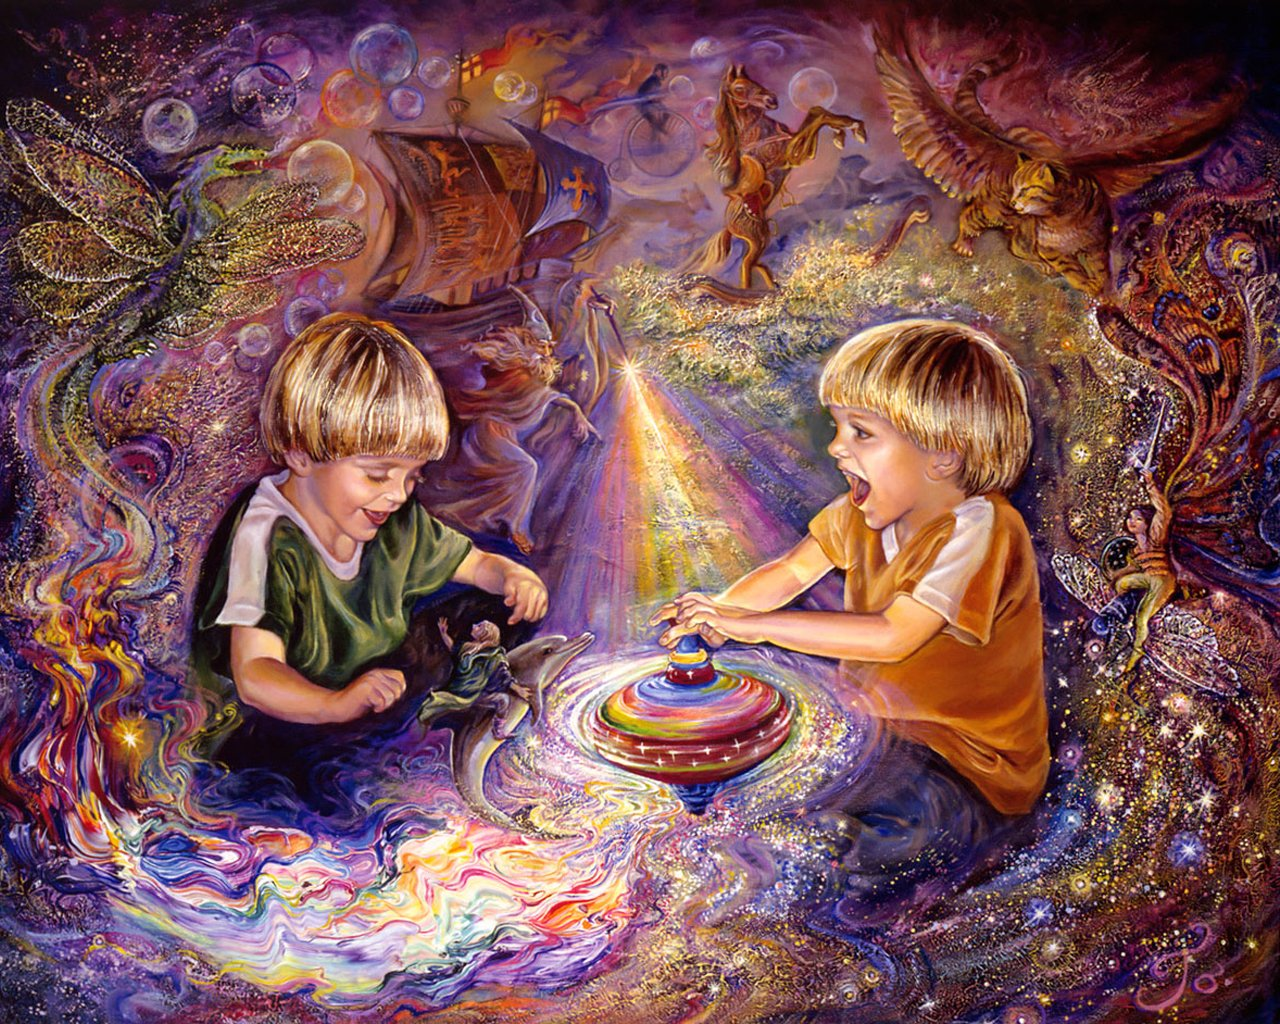 Fantasy wallpapers screensavers cini clips for Best art galleries in the world